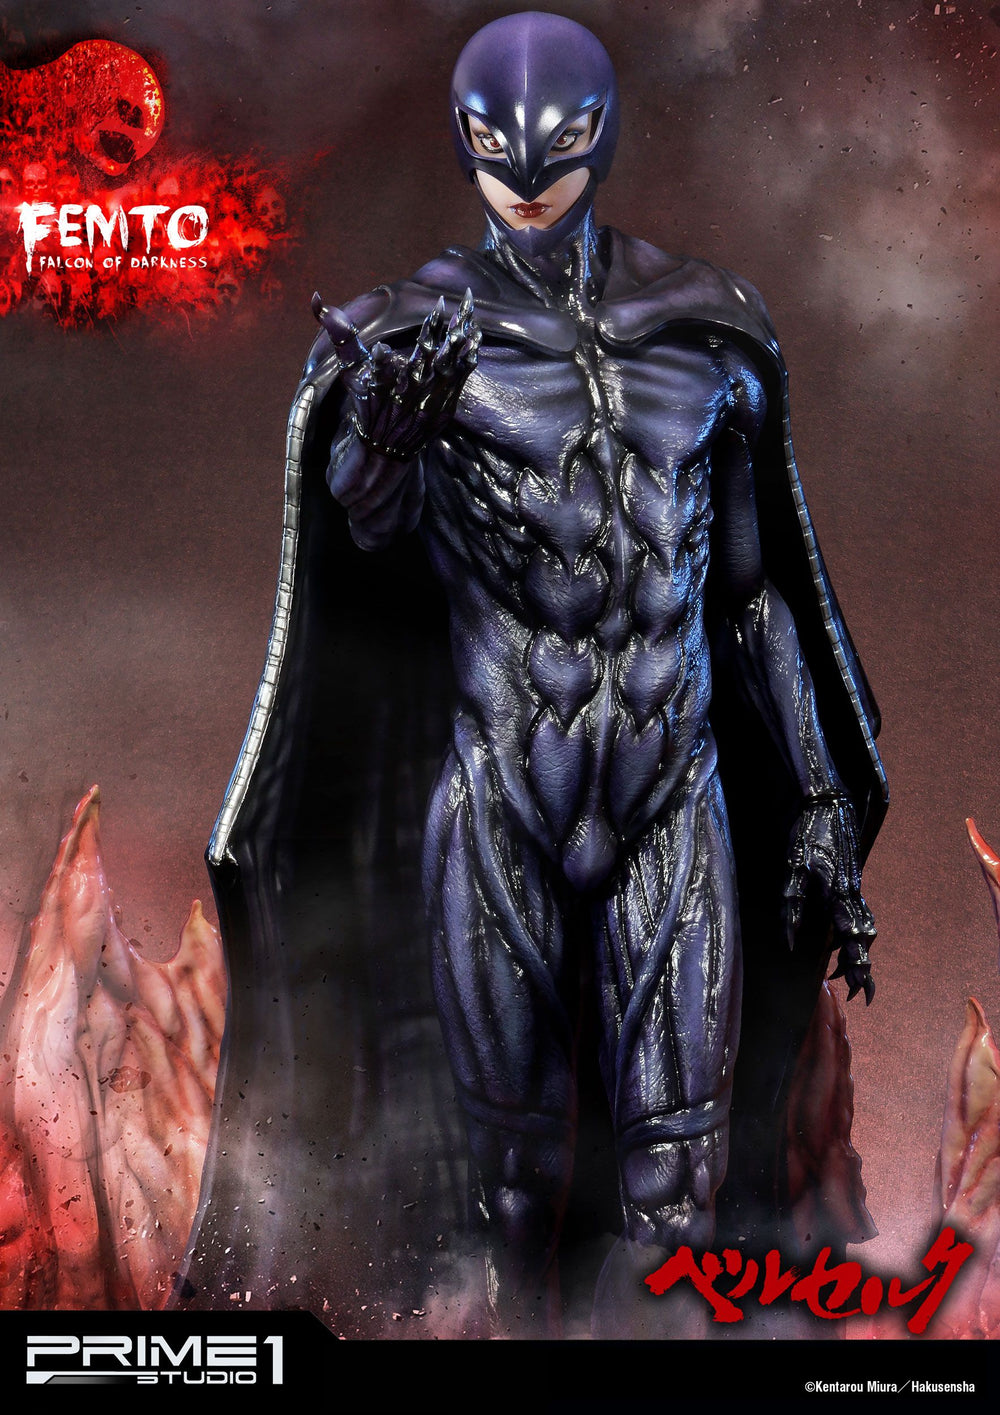 Prime 1 Studio Berserk Femto The Falcon of Darkness 1/4 Statue